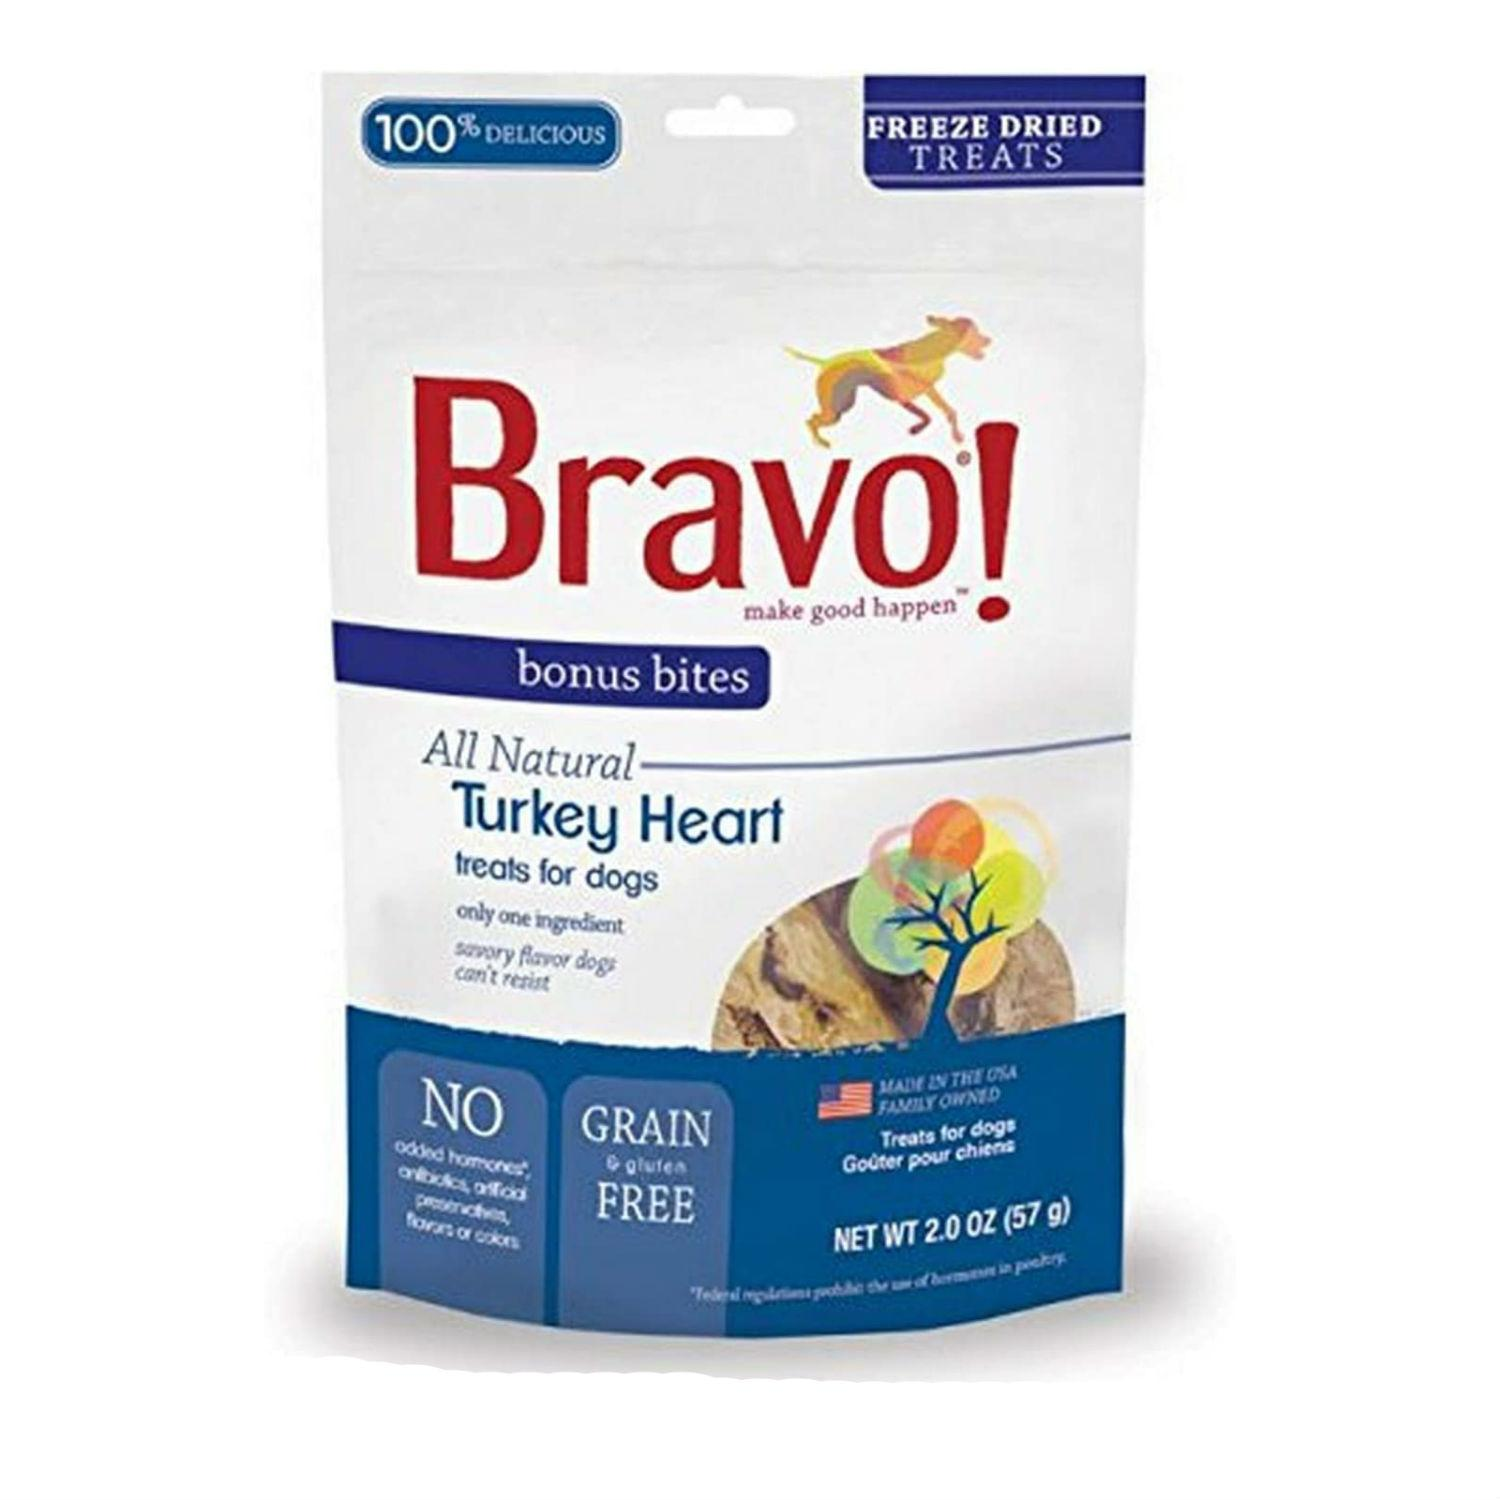 Bravo! Bonus Bites Freeze Dried Dog Treat - Turkey Hearts